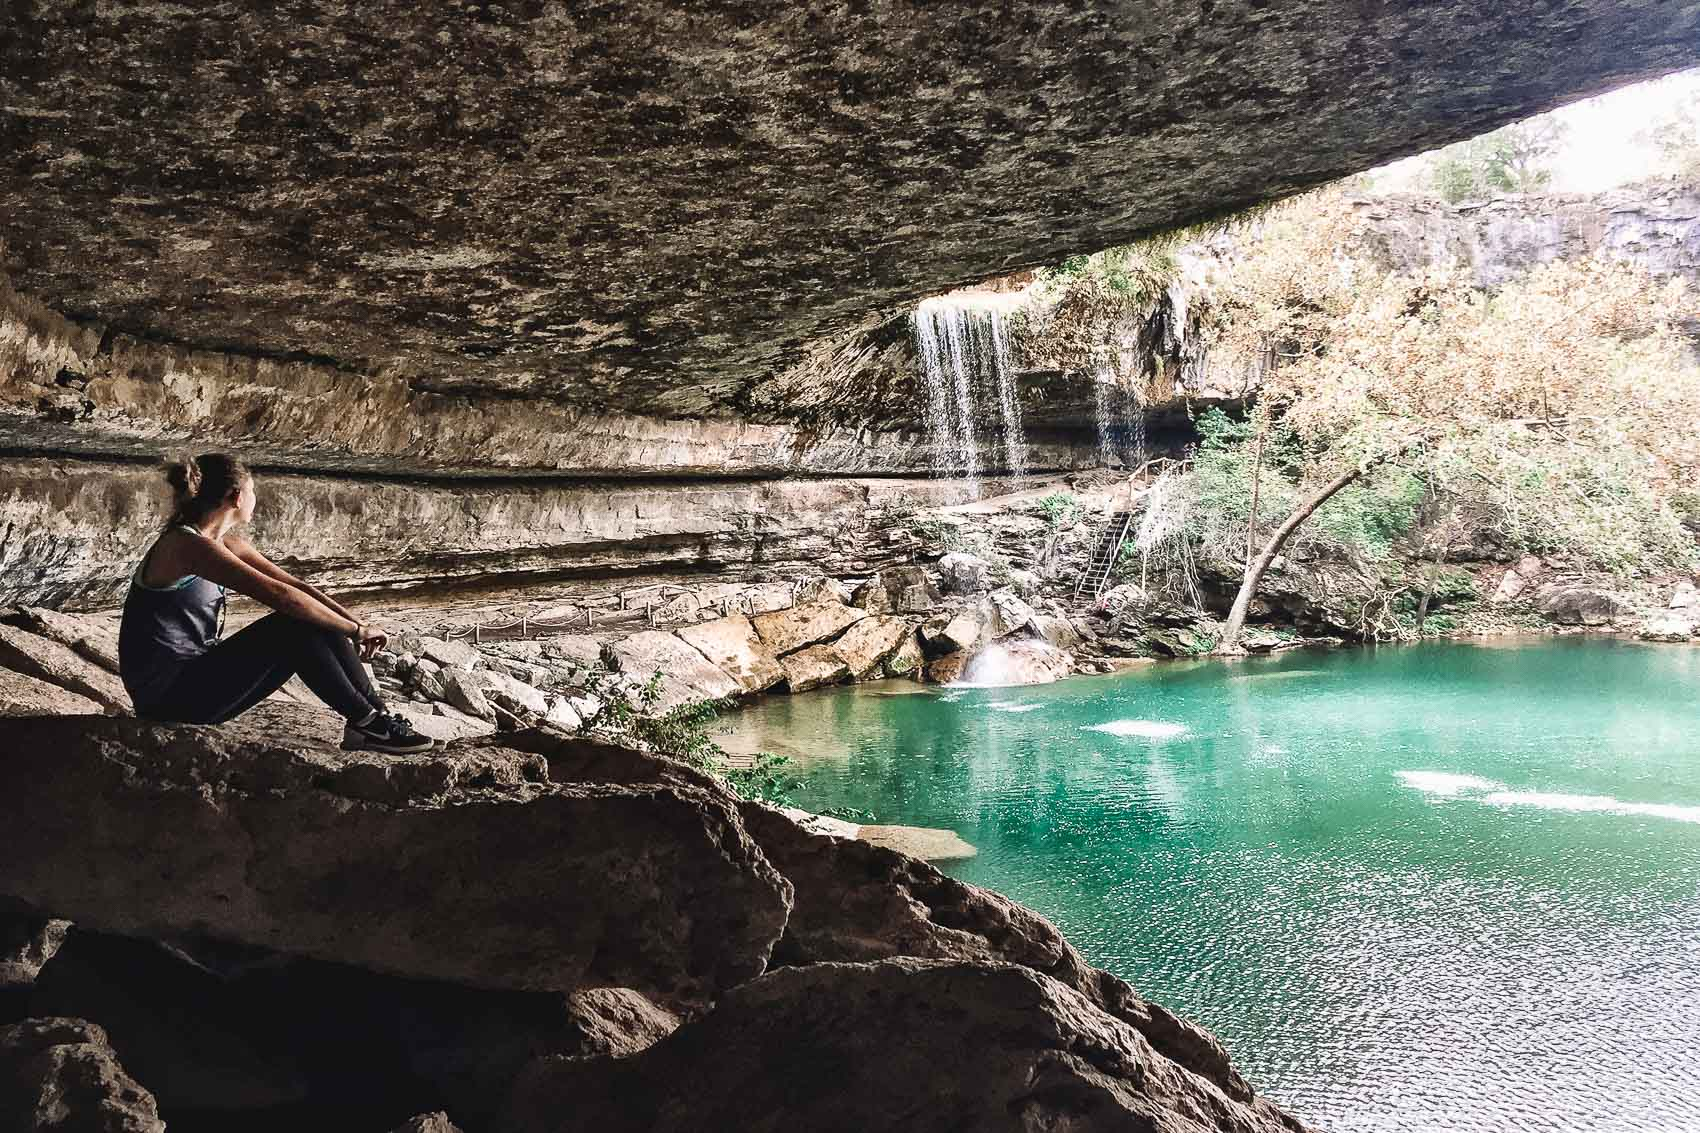 hannah sitting on rock looking at hamilton pool in texas hill country